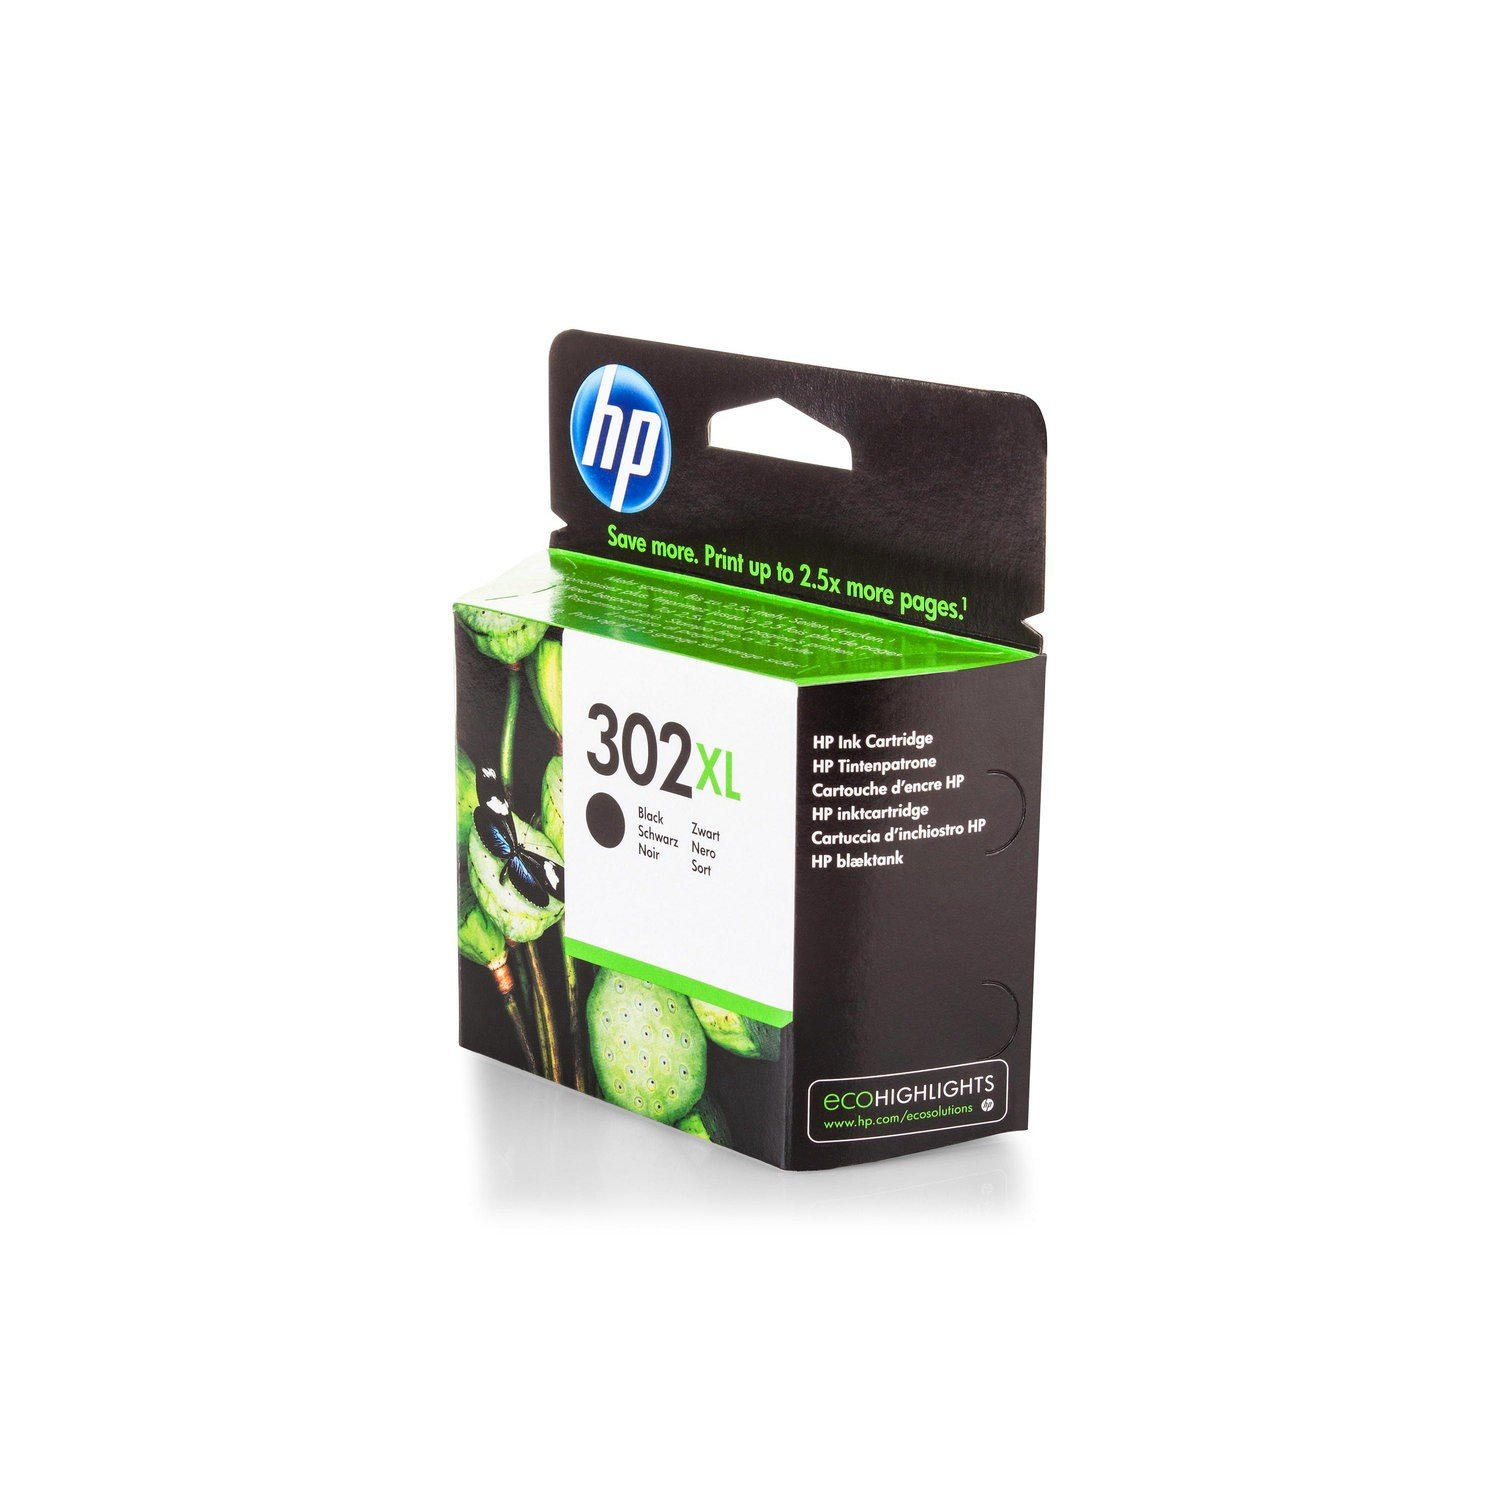 Hewlett Packard FUAE Cartucho de tinta original HP para HP Officejet